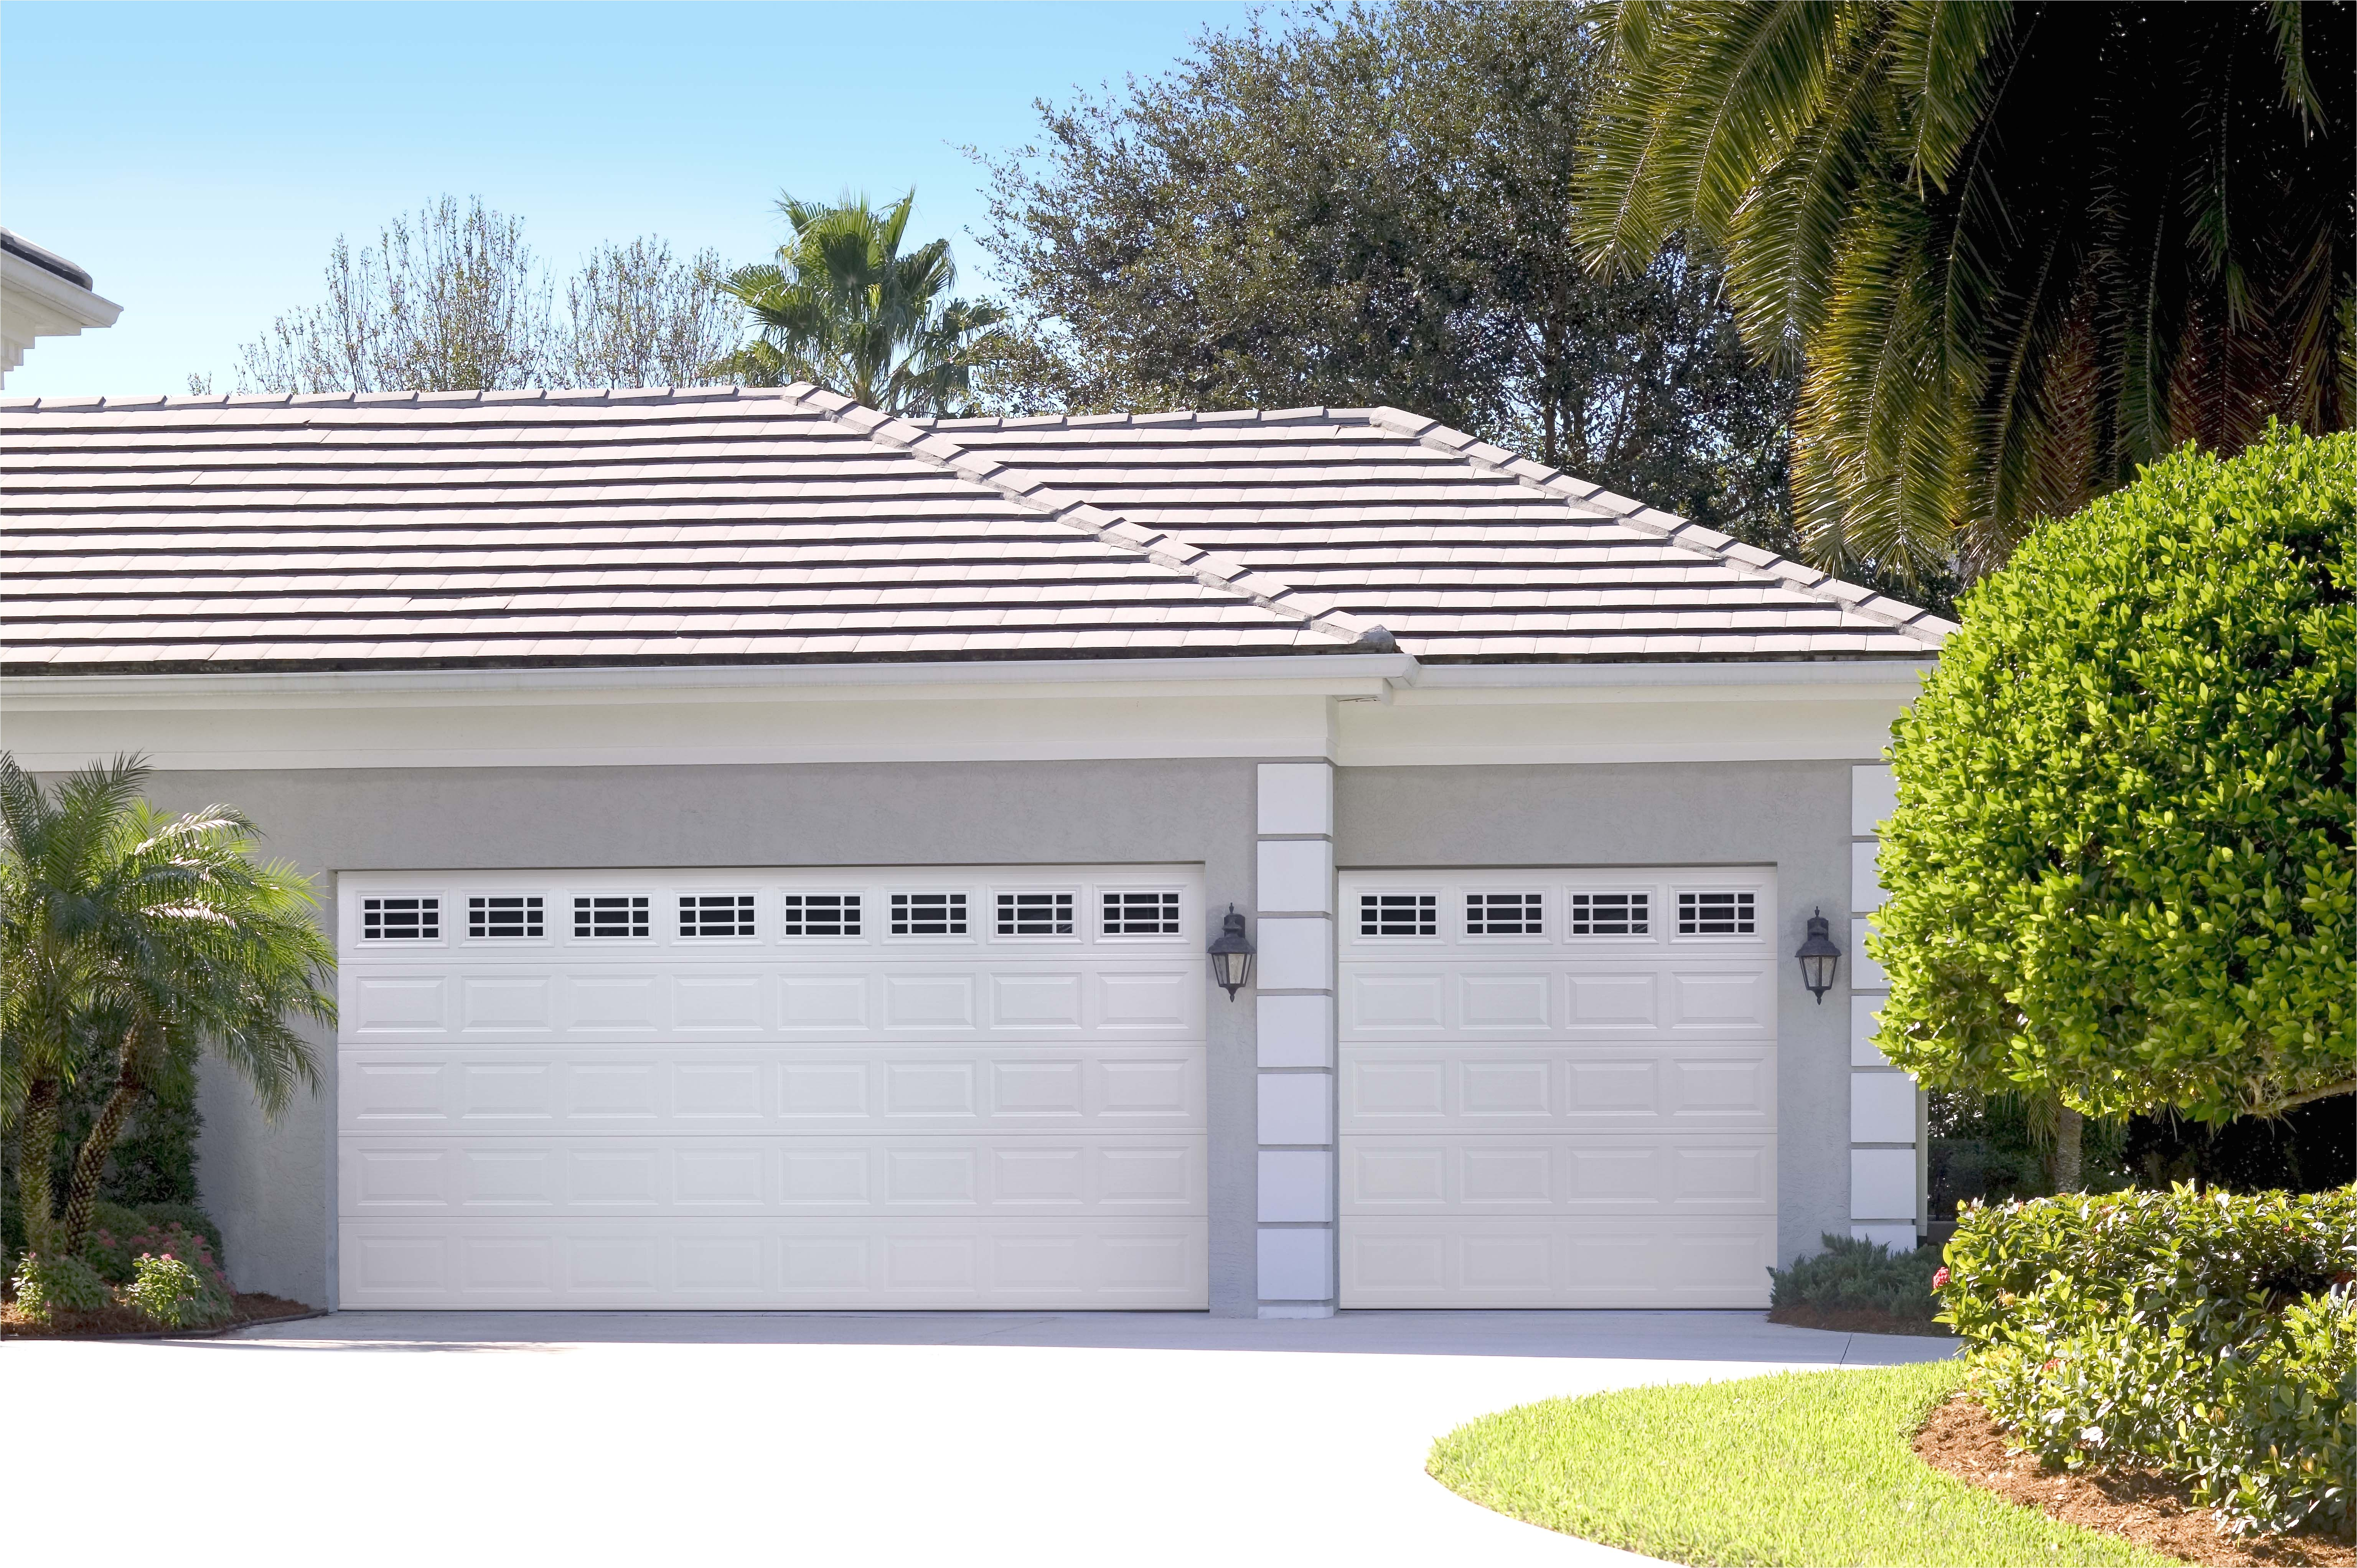 amarr short panel garage door in true white with prairie windows available in olympus heritagea lincoln and stratforda collections